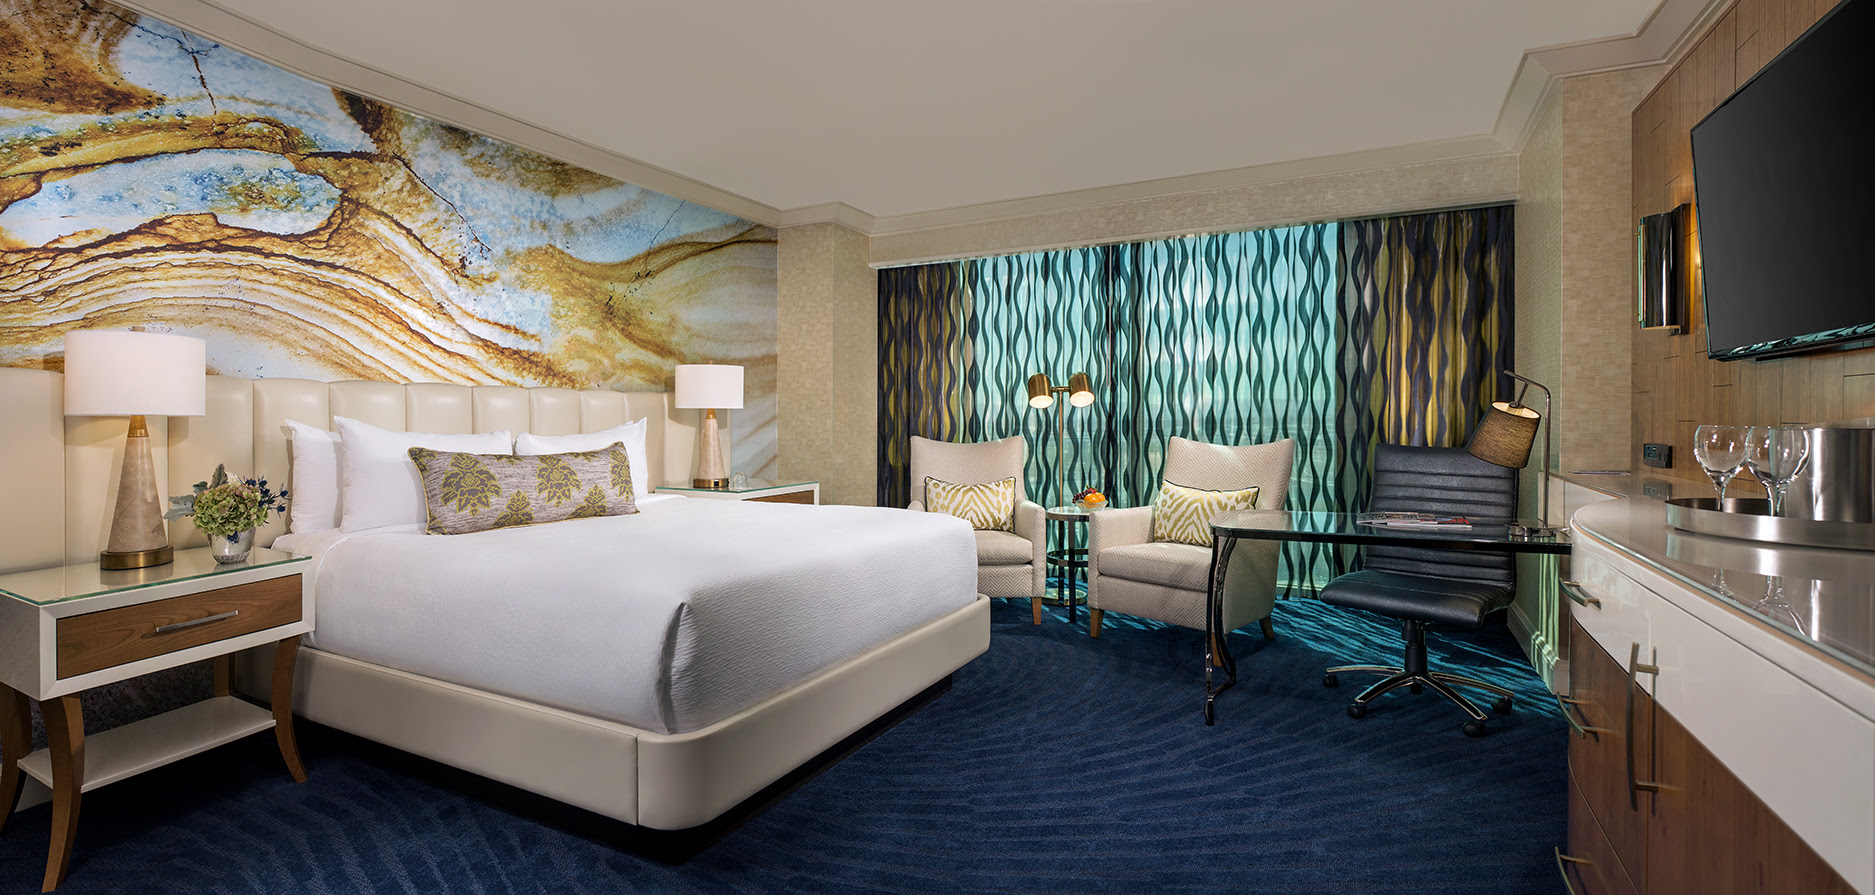 Mandalay Bay Las Vegas Unveils Newly Remodeled Hotel Rooms